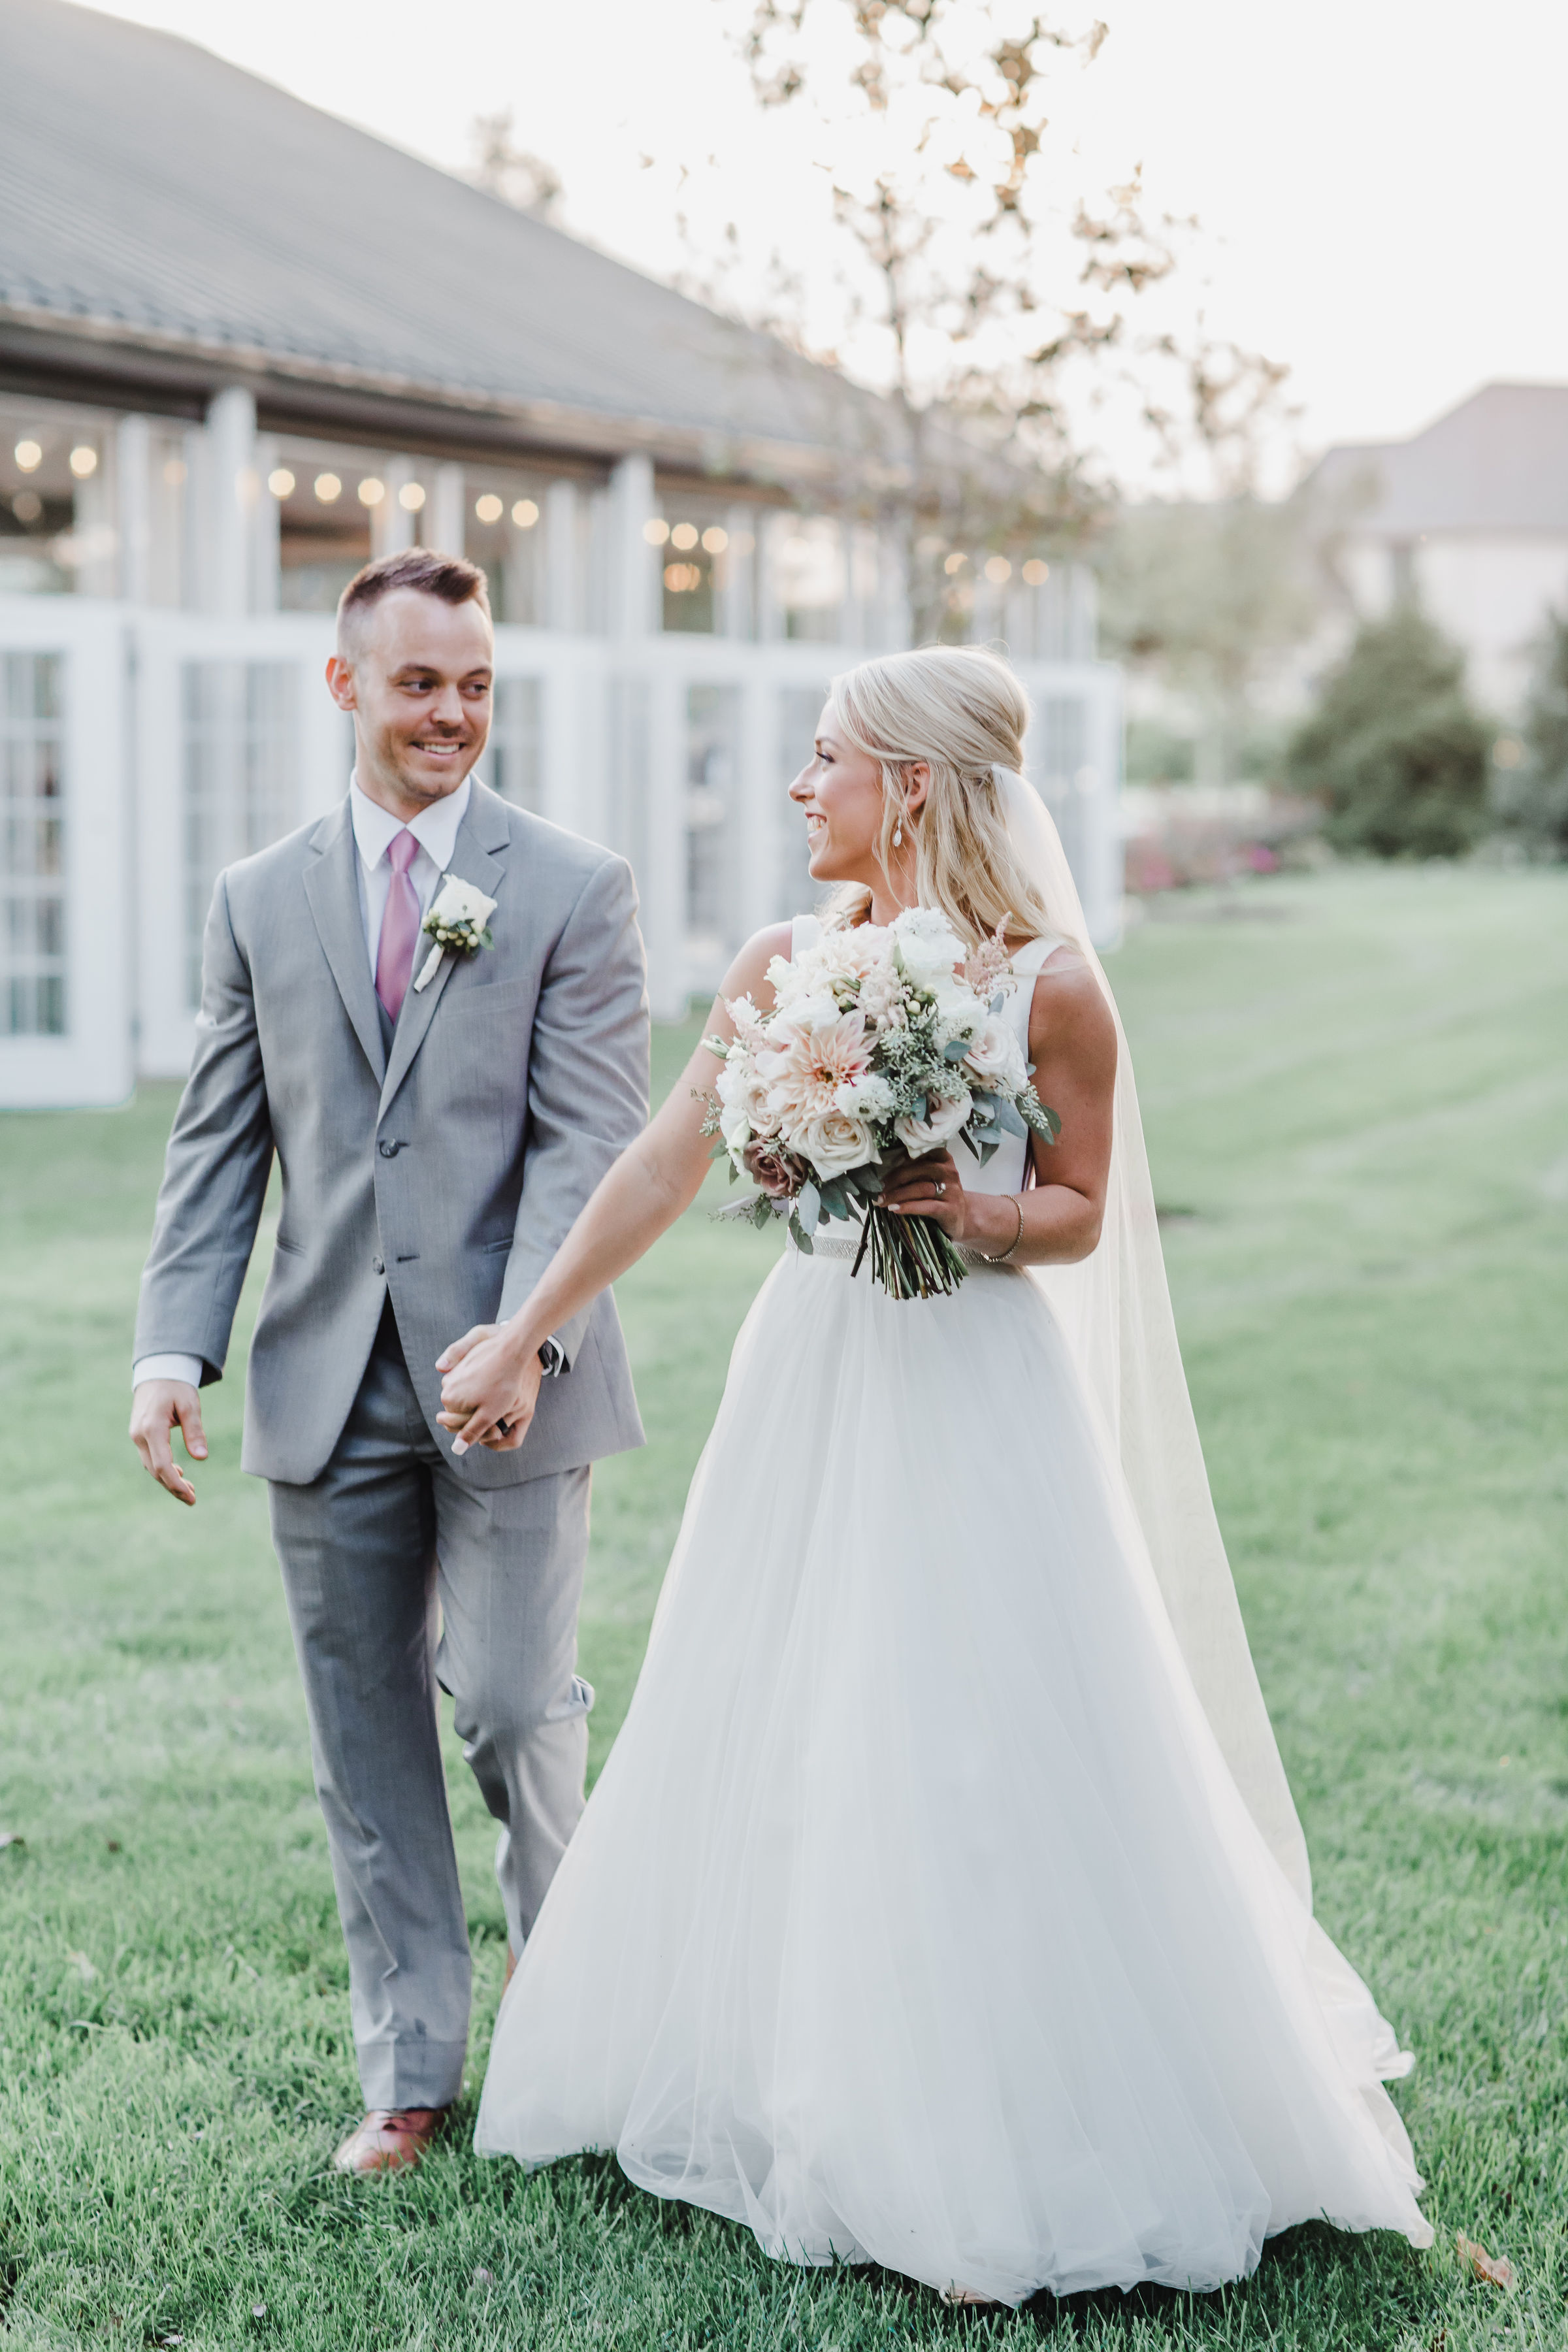 """""""Rachael captured our wedding day 10/5/18 and she did an AMAZING job! I really can't say enough good things about the entire process working with her. She was a complete joy to work with and made everyone feel so comfortable throughout the entire day of the wedding. Not only was she the best to work with, her work is amazing. I highly recommend having her for your big day, you will not be disappointed!"""" - - Tara and Taylor"""